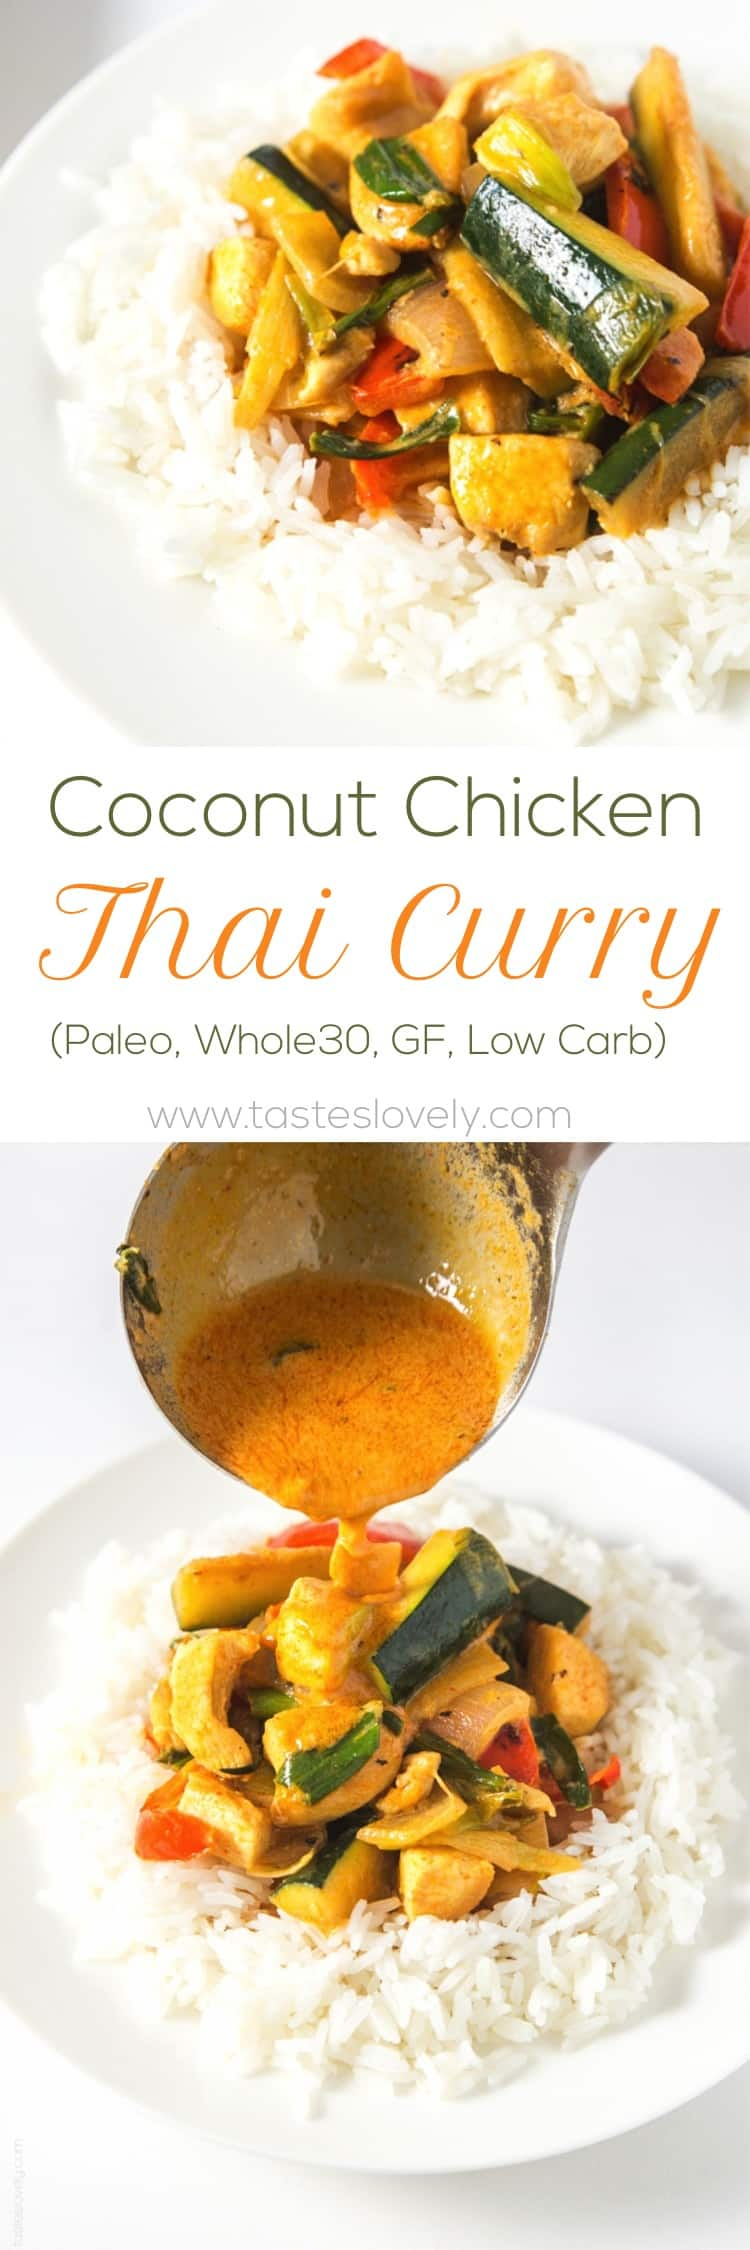 Coconut Chicken Thai Curry - Tastes Lovely